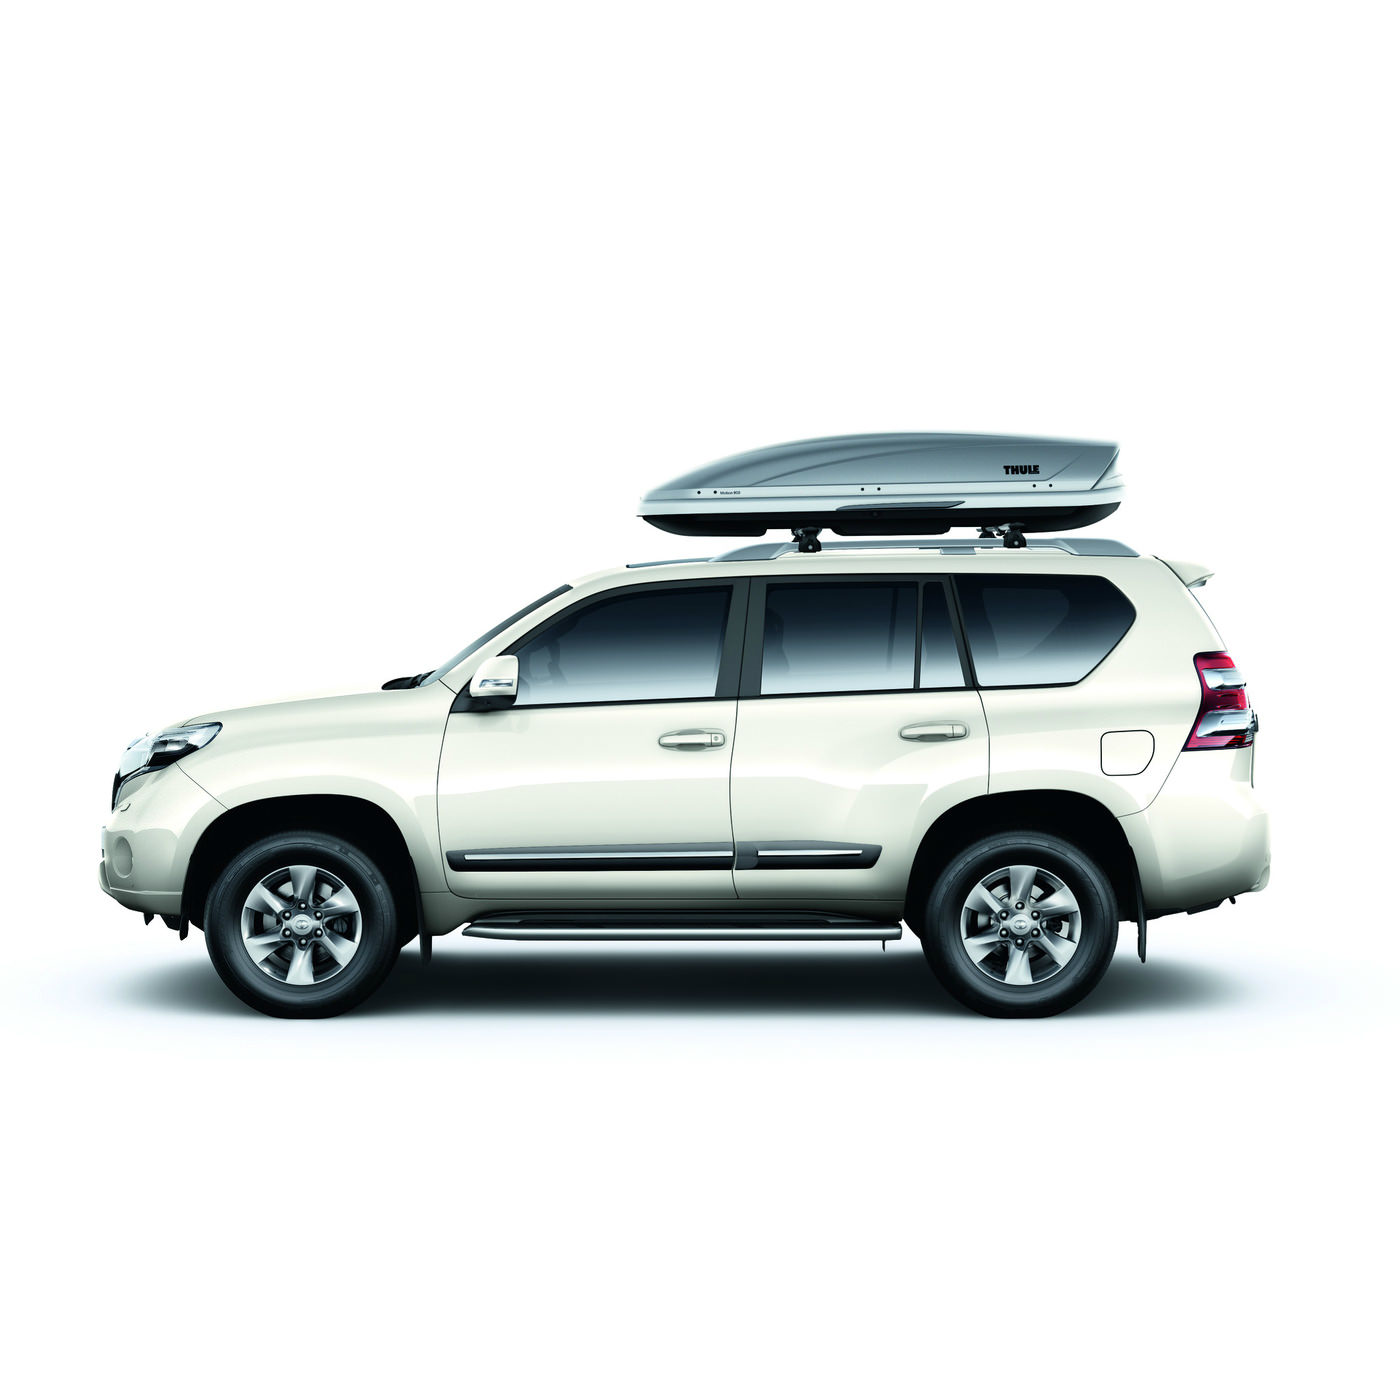 image of a roof rack on a car